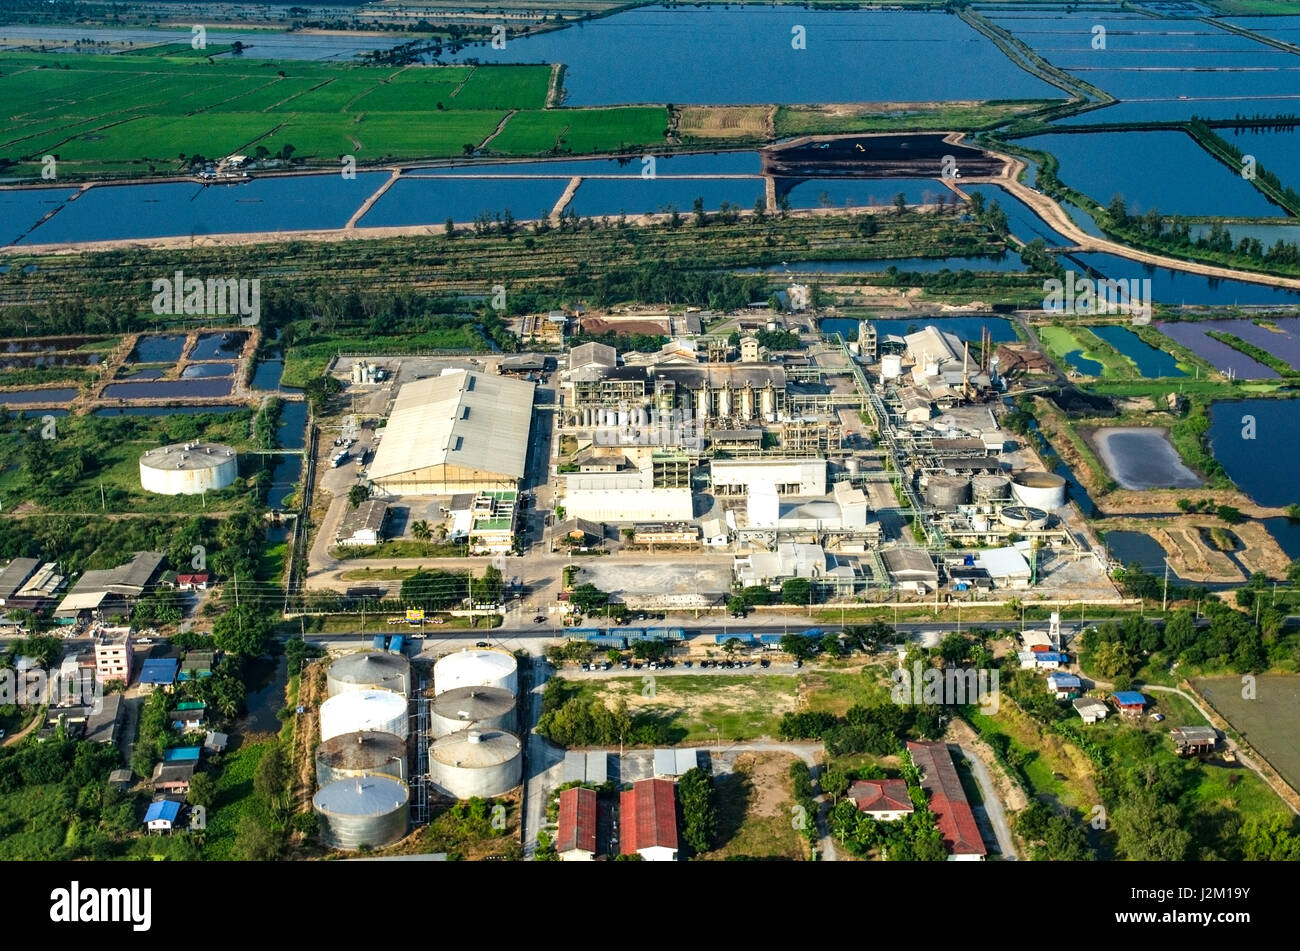 Farming countryside industrial development aerial photo - Stock Image